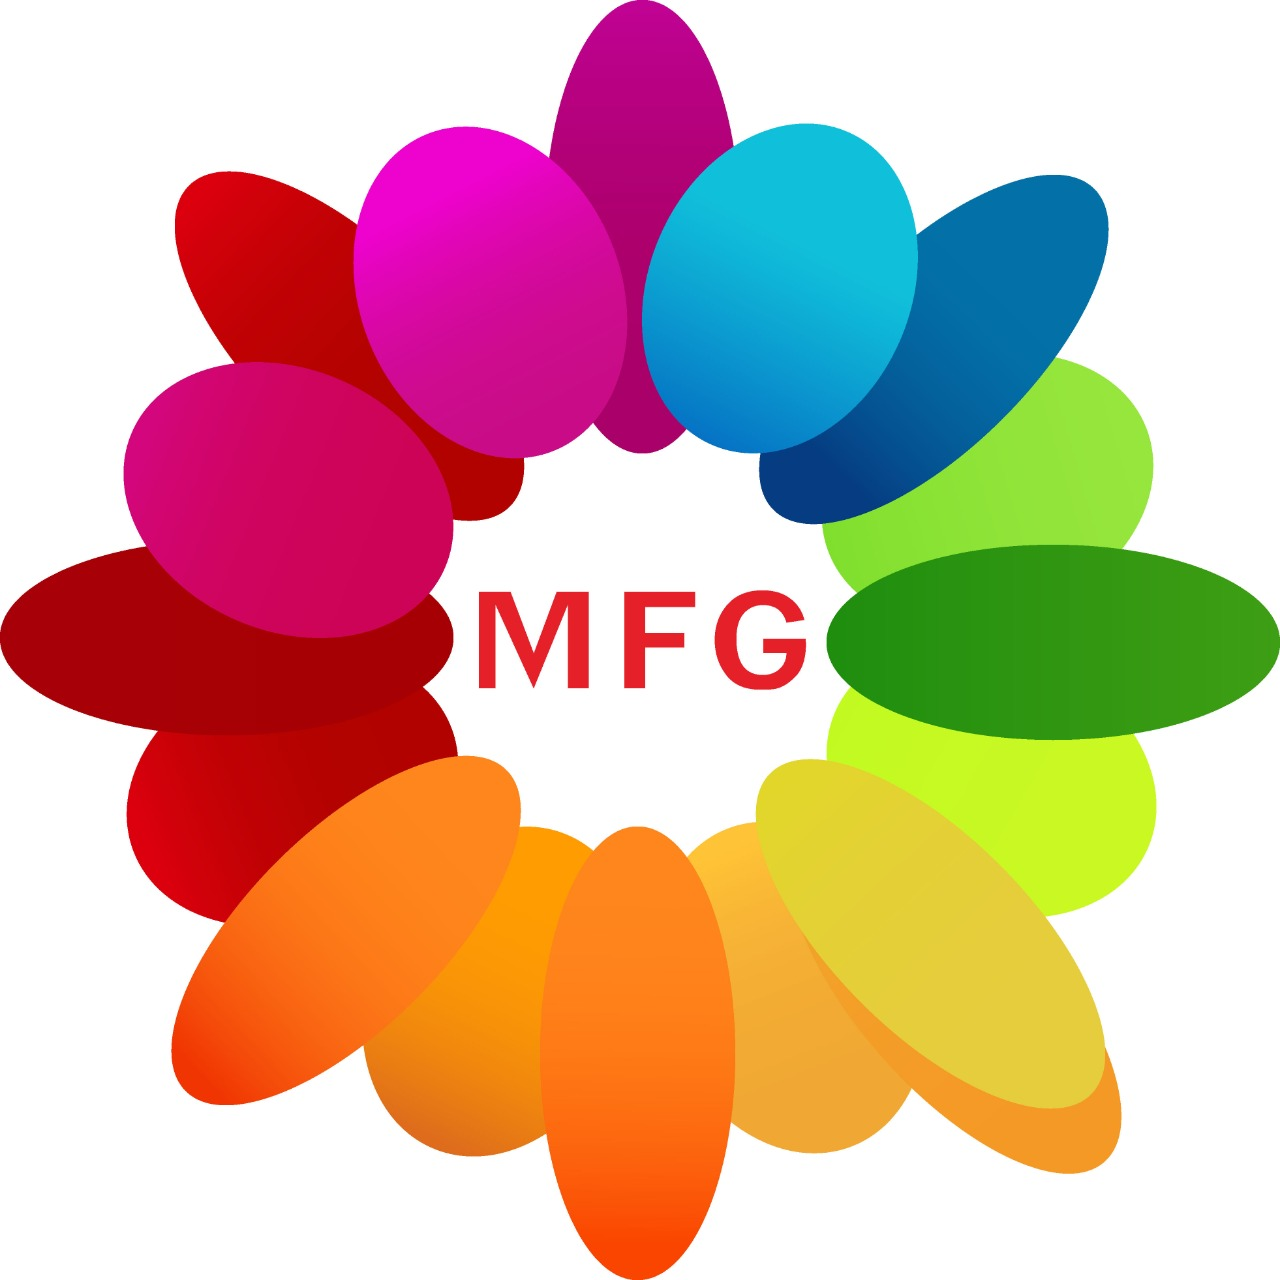 Bunch of 20 yellow roses